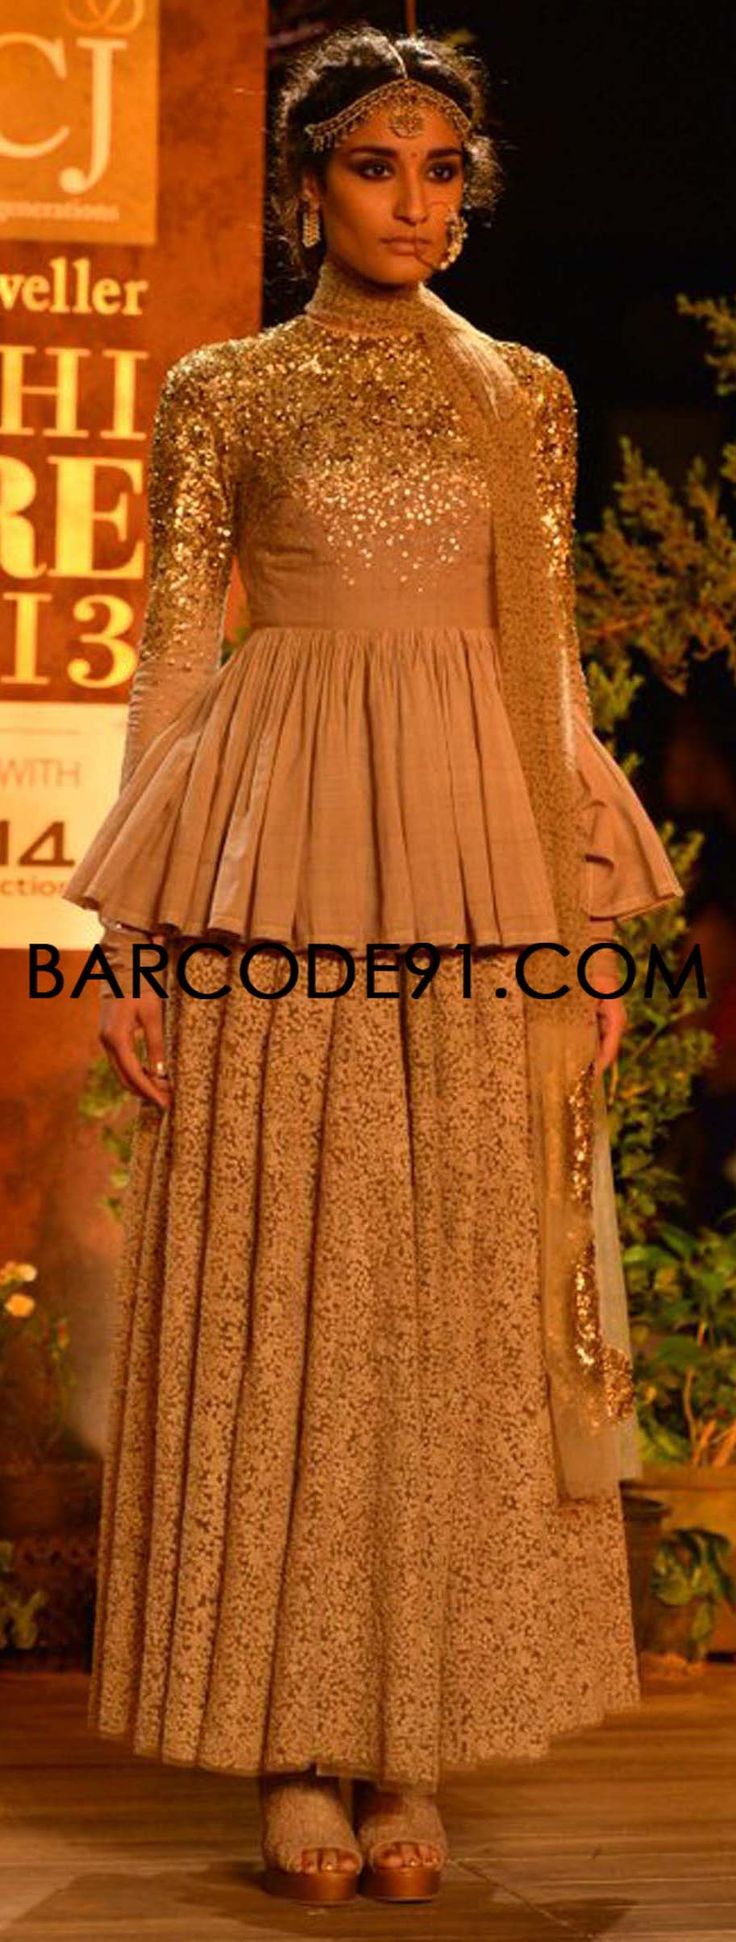 http://www.barcode91.com/designers/sabyasachi.html   Sabyasachi showcases his collection at PCJ Delhi Couture Week, Delhi